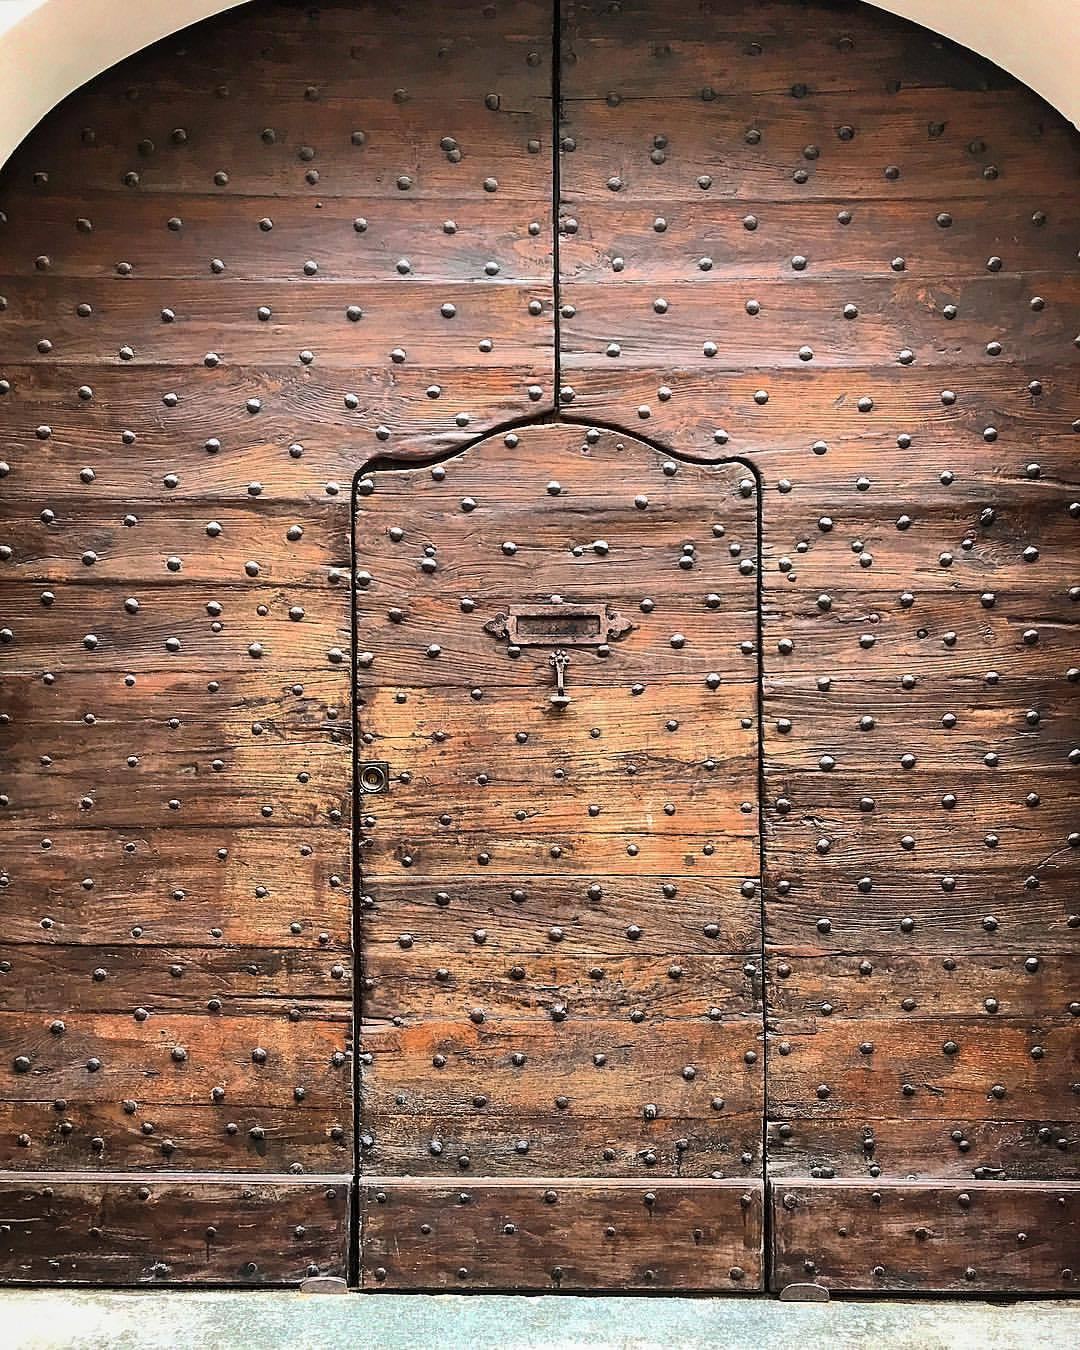 A wicket gate, a door within a door, was important in the Middle Ages.  The larger gate, used to allow horse-drawn carriages  into the interior yard, didn't need to be swung open for pedestrians, thus controlling access and offering greater safety from marauders storming the gates.  -  #italy #piedmont #door #woodworking  (at Bra, Italy)